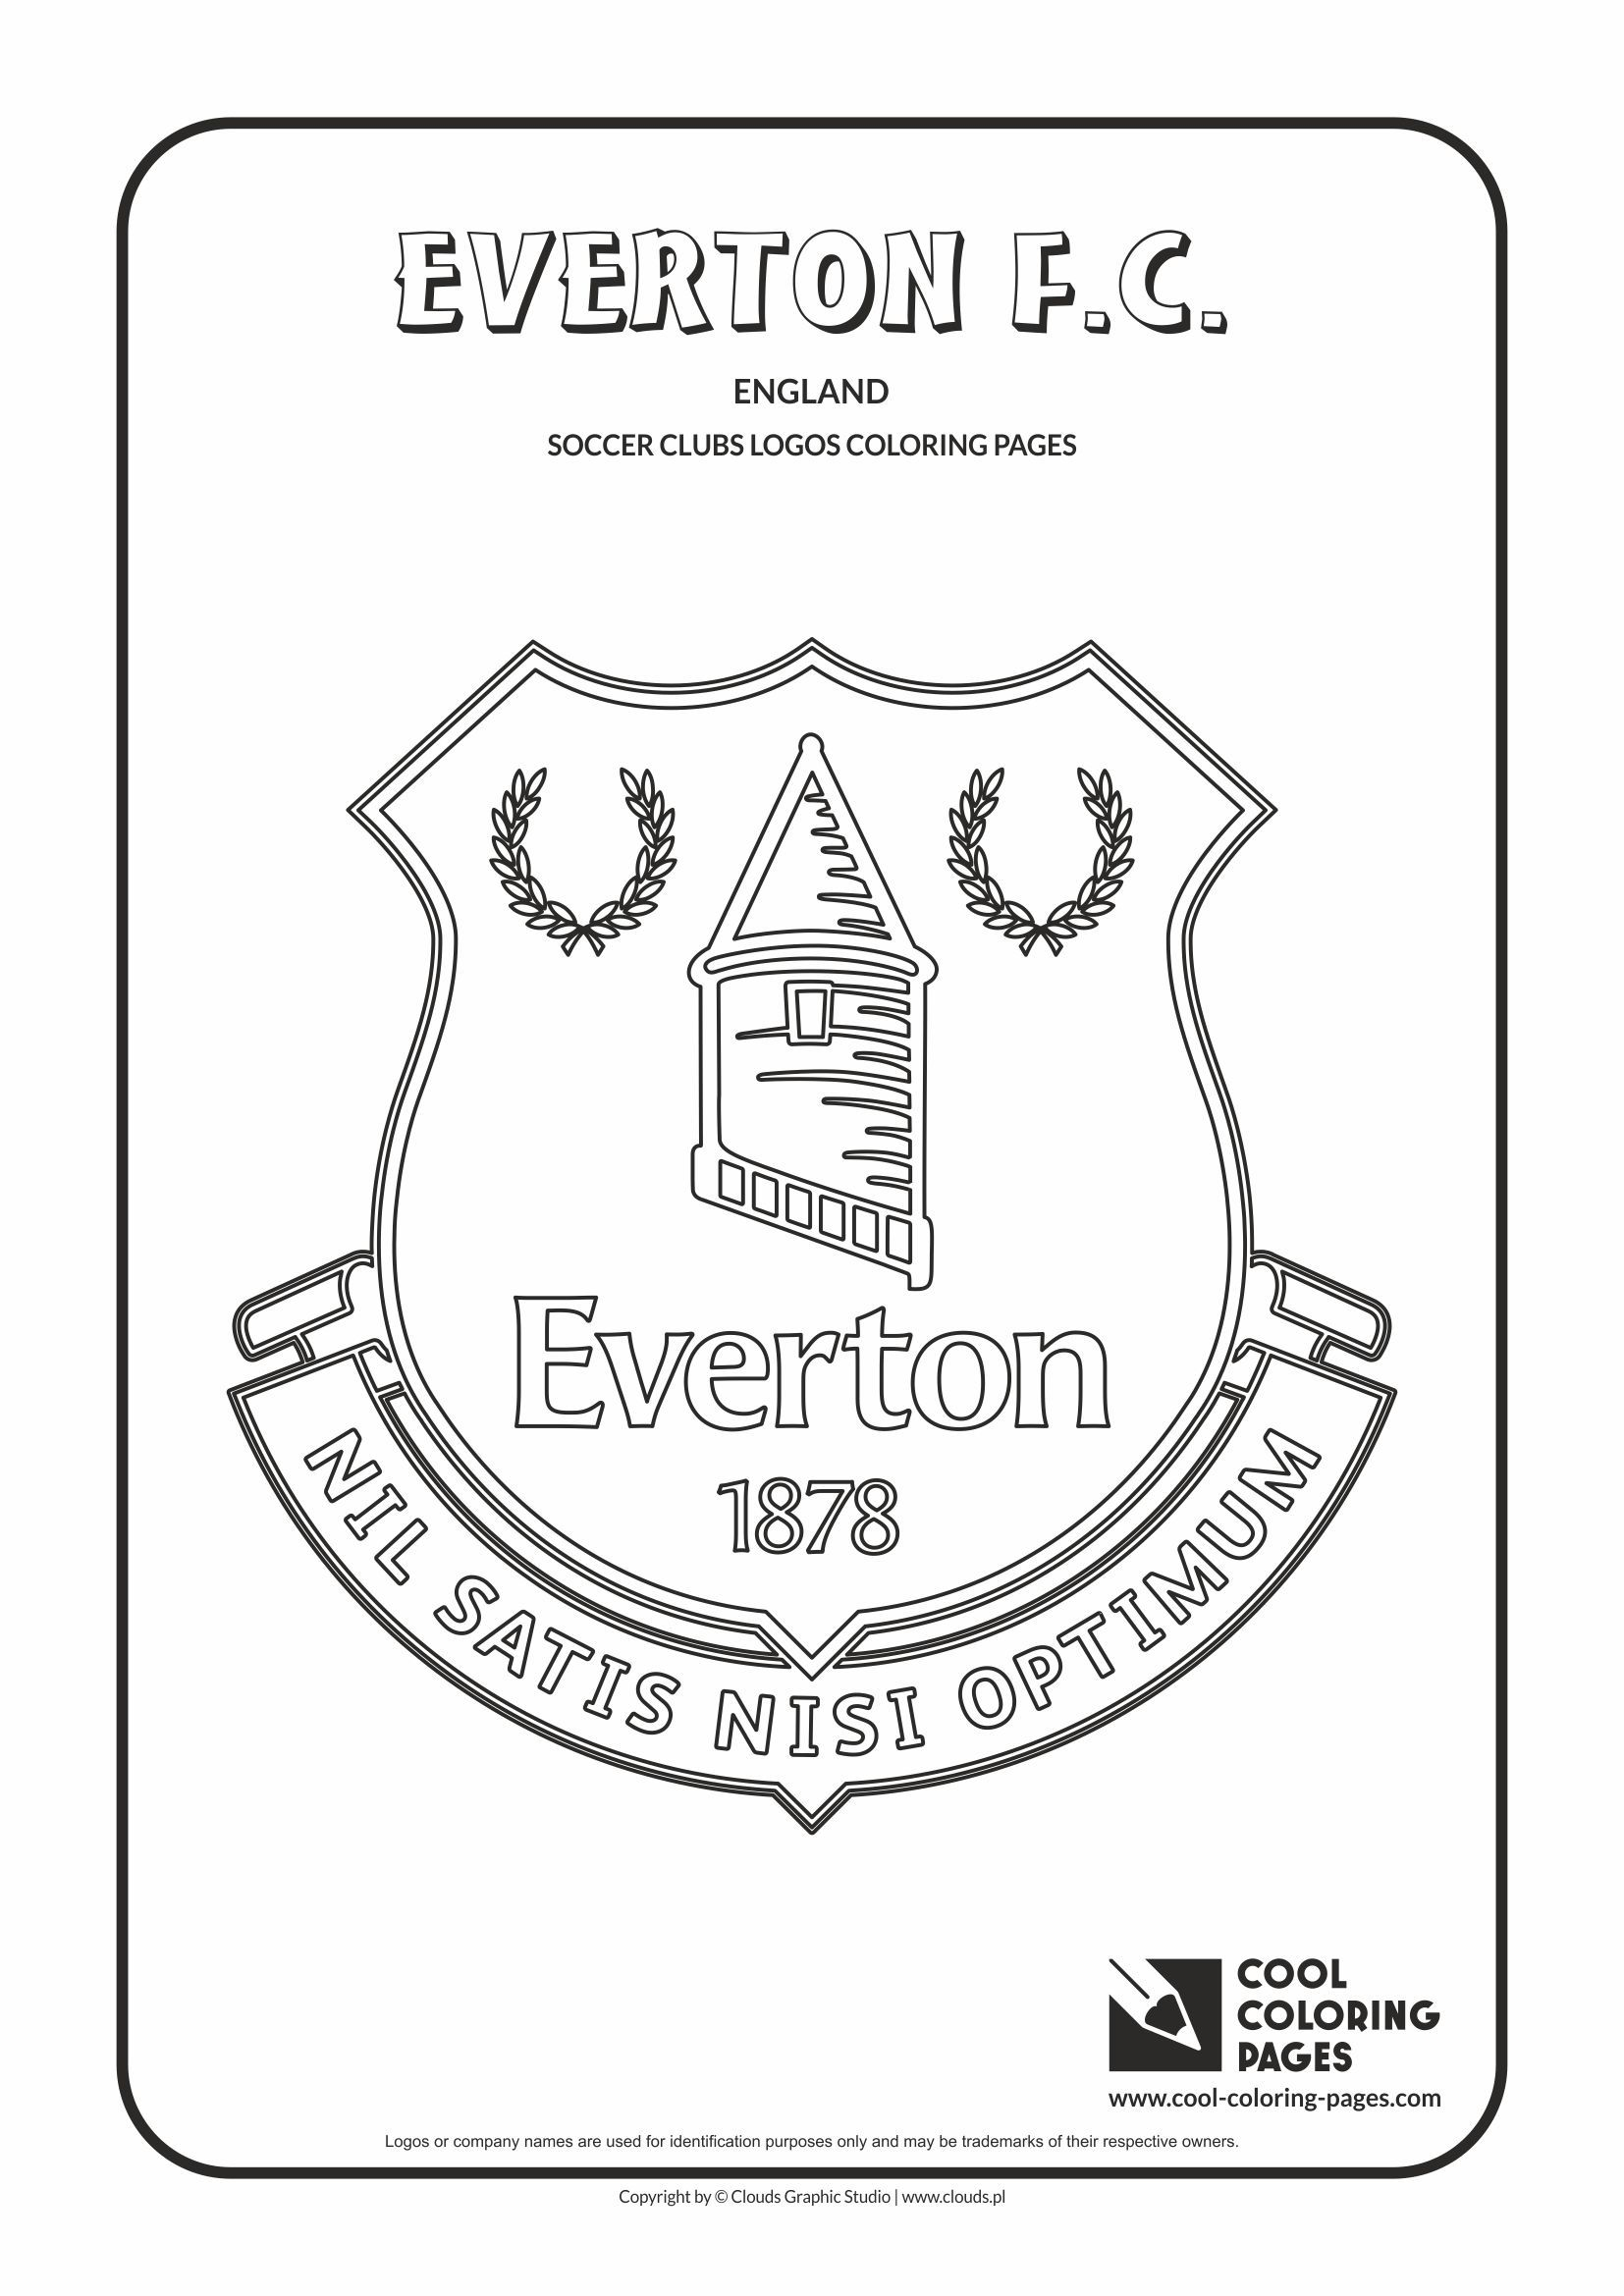 Everton F.C. logo coloring / Coloring page with Everton F